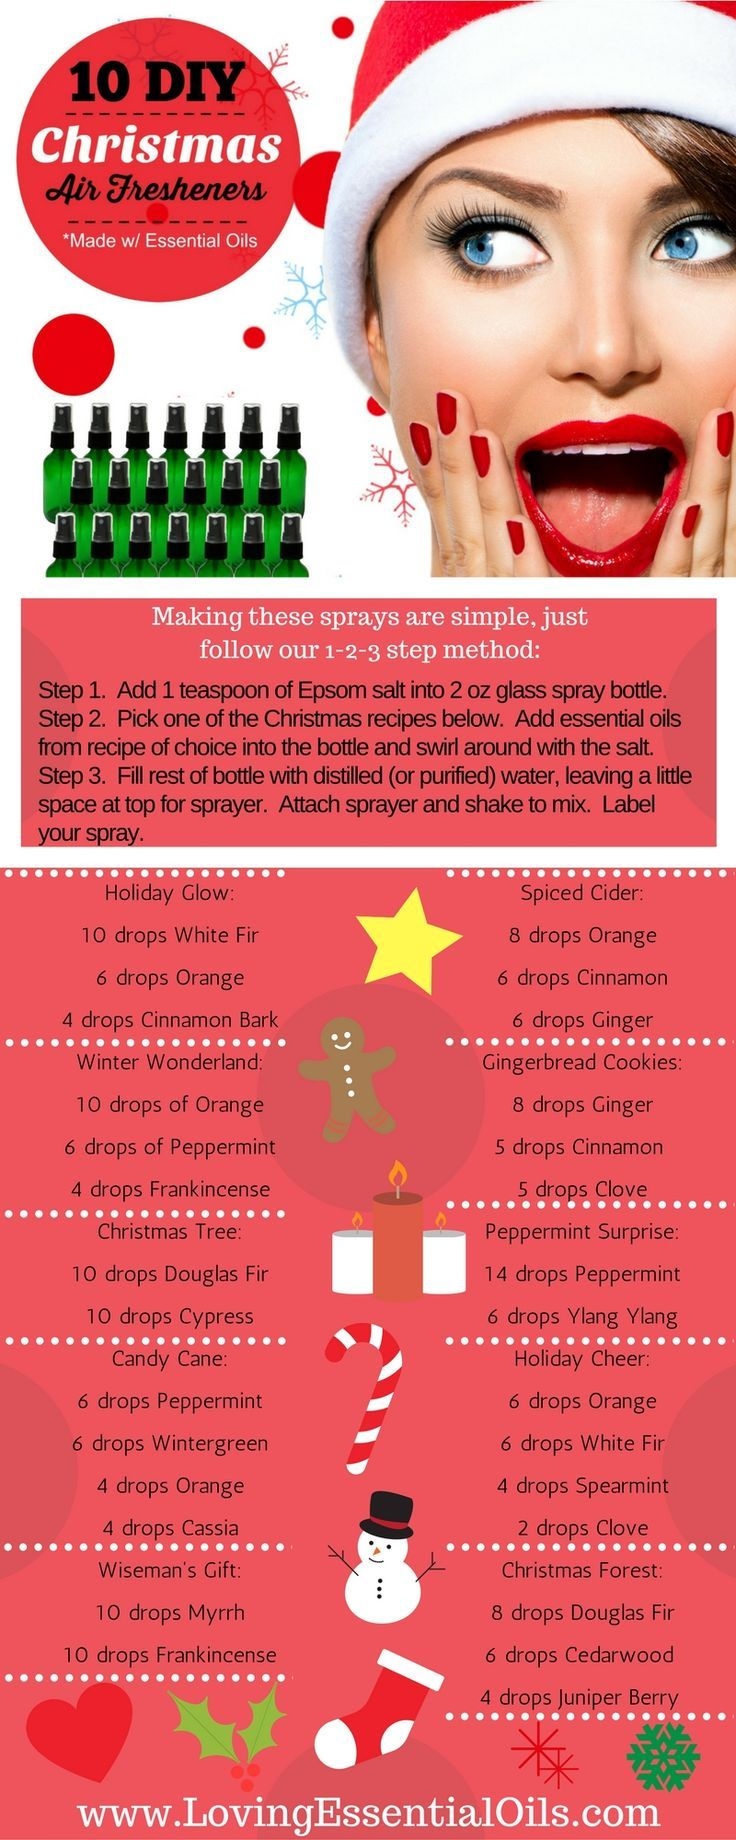 10 DIY Christmas Air Fresheners Made with Essential Oils Recipes Infographic http://www.lovingessentialoils.com/blogs/diy-recipes/10-diy-christmas-air-fresheners-for-the-holidays Make DIY homemade essential oil blend sprays with holiday scents you and your family will love. Save this pin now!